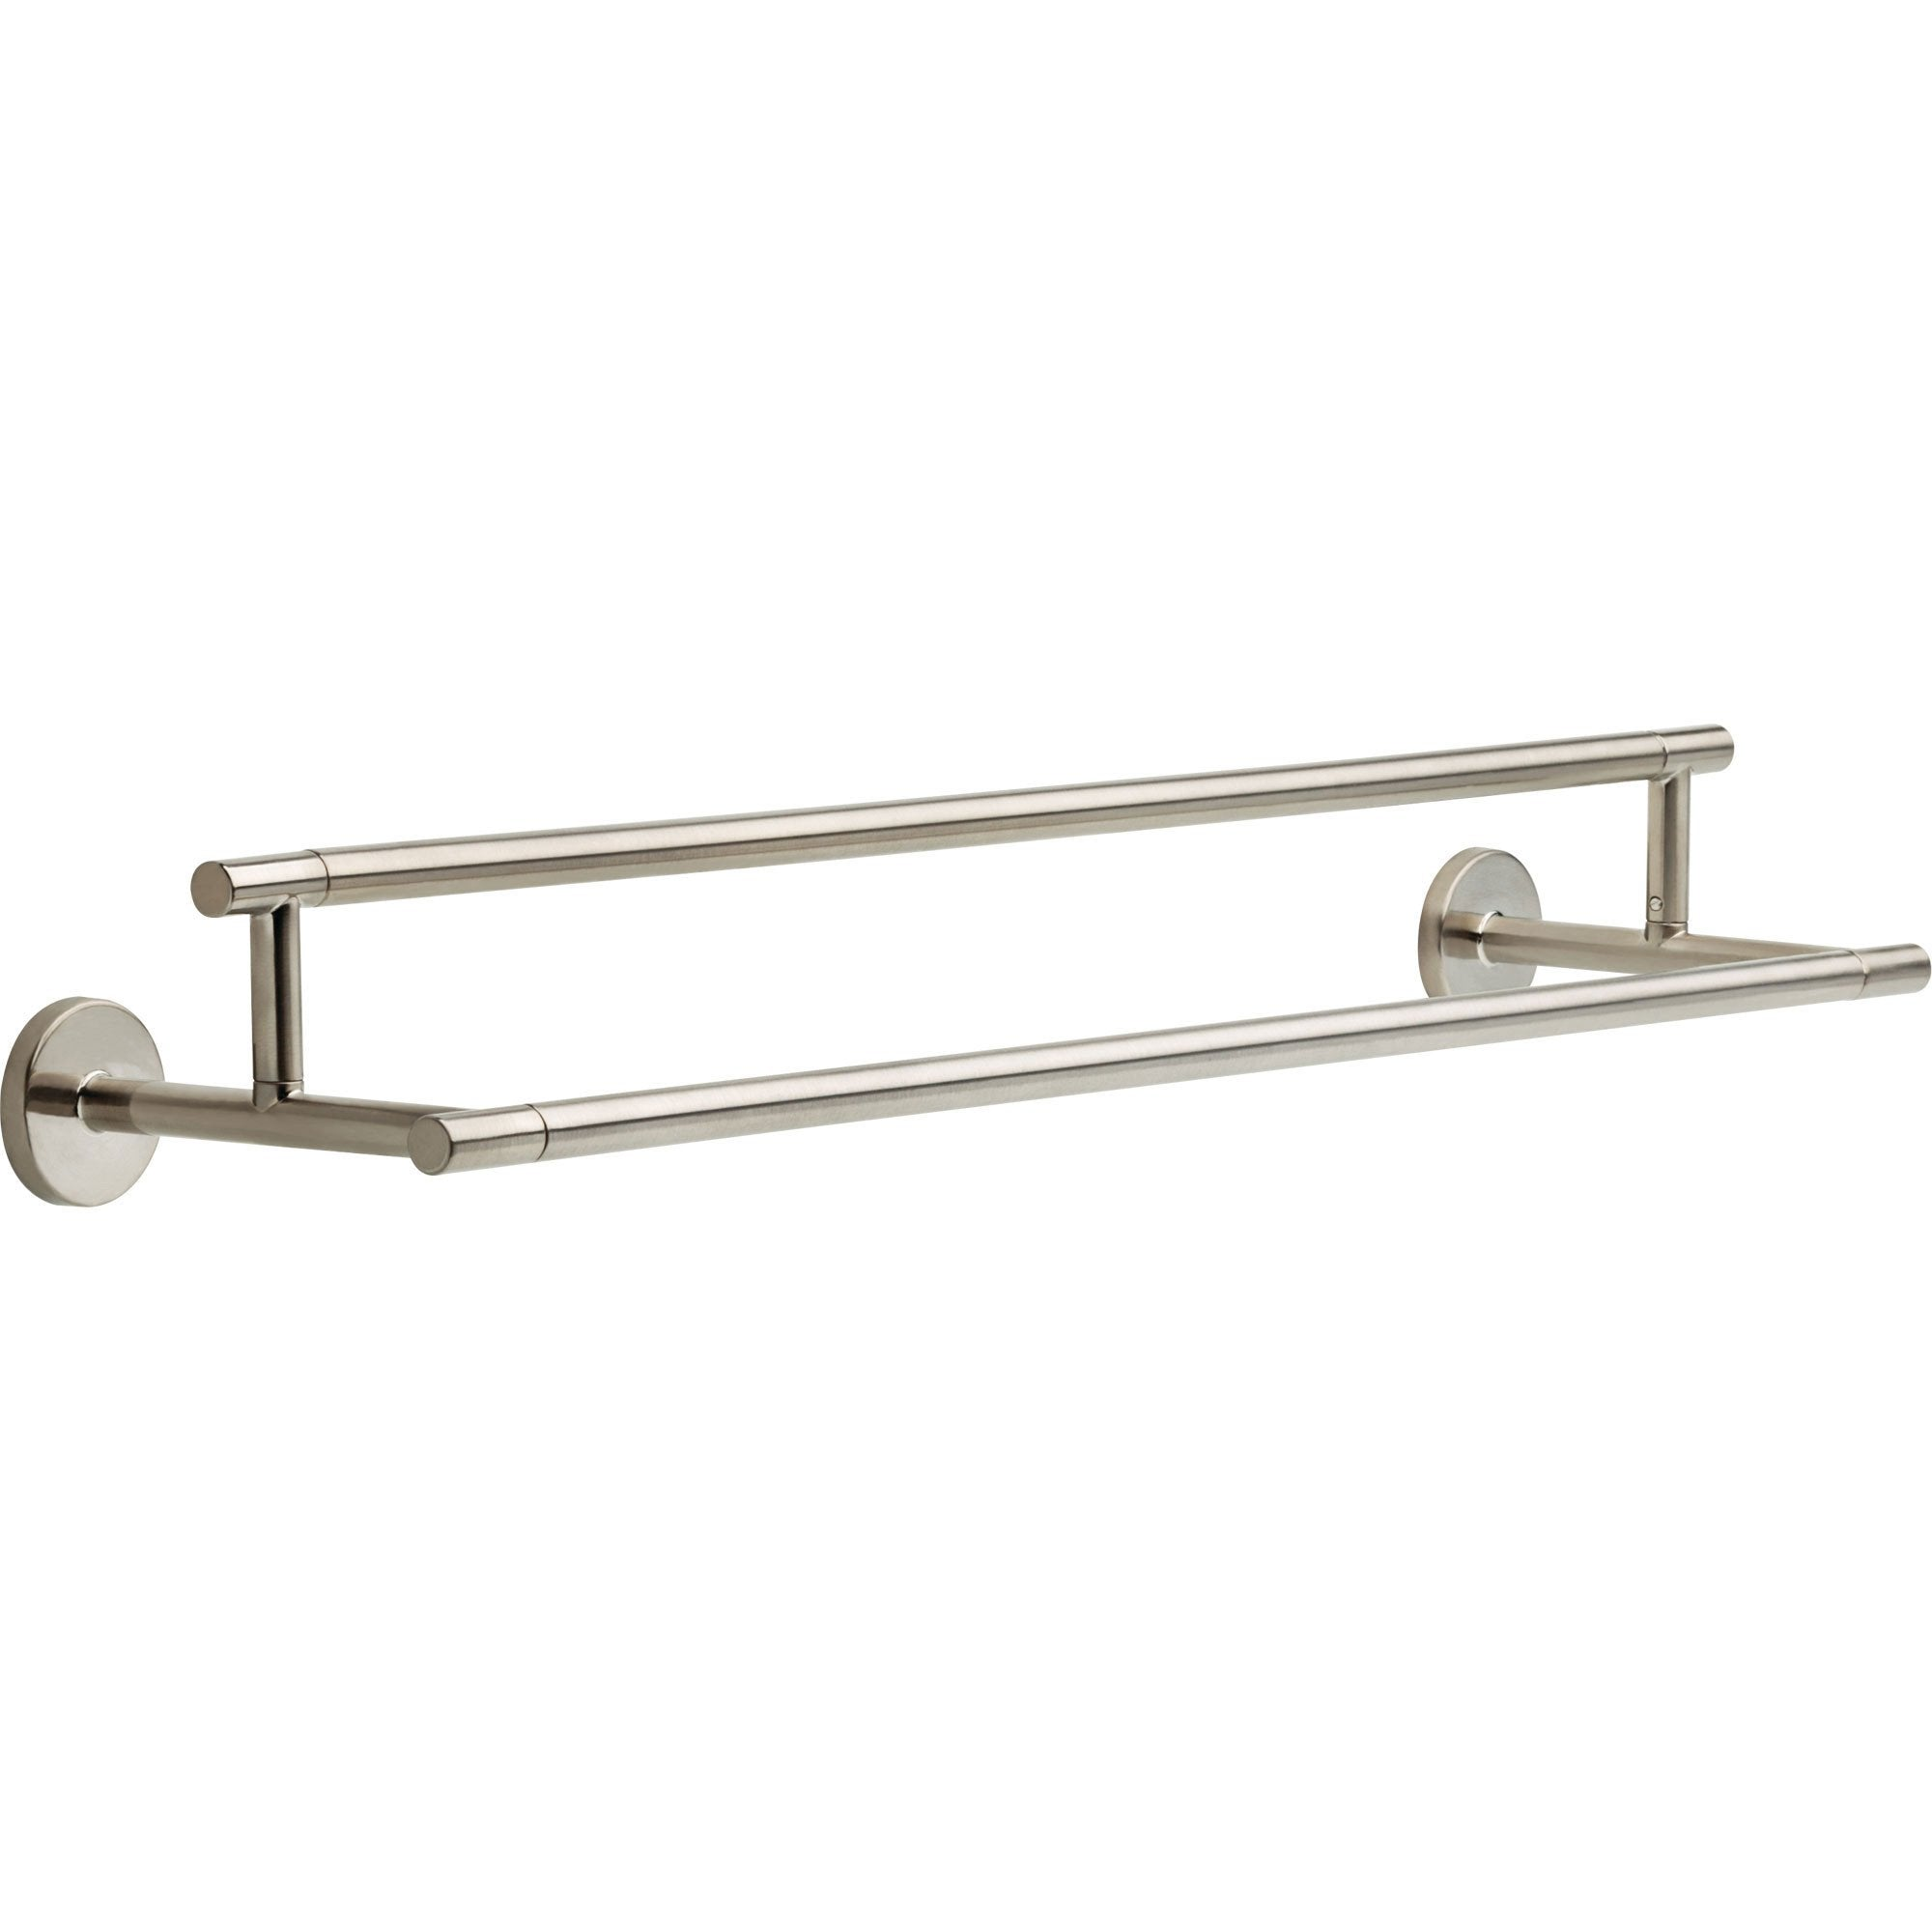 Delta Trinsic Modern 24 inch Stainless Steel Finish Double Towel Bar 638756